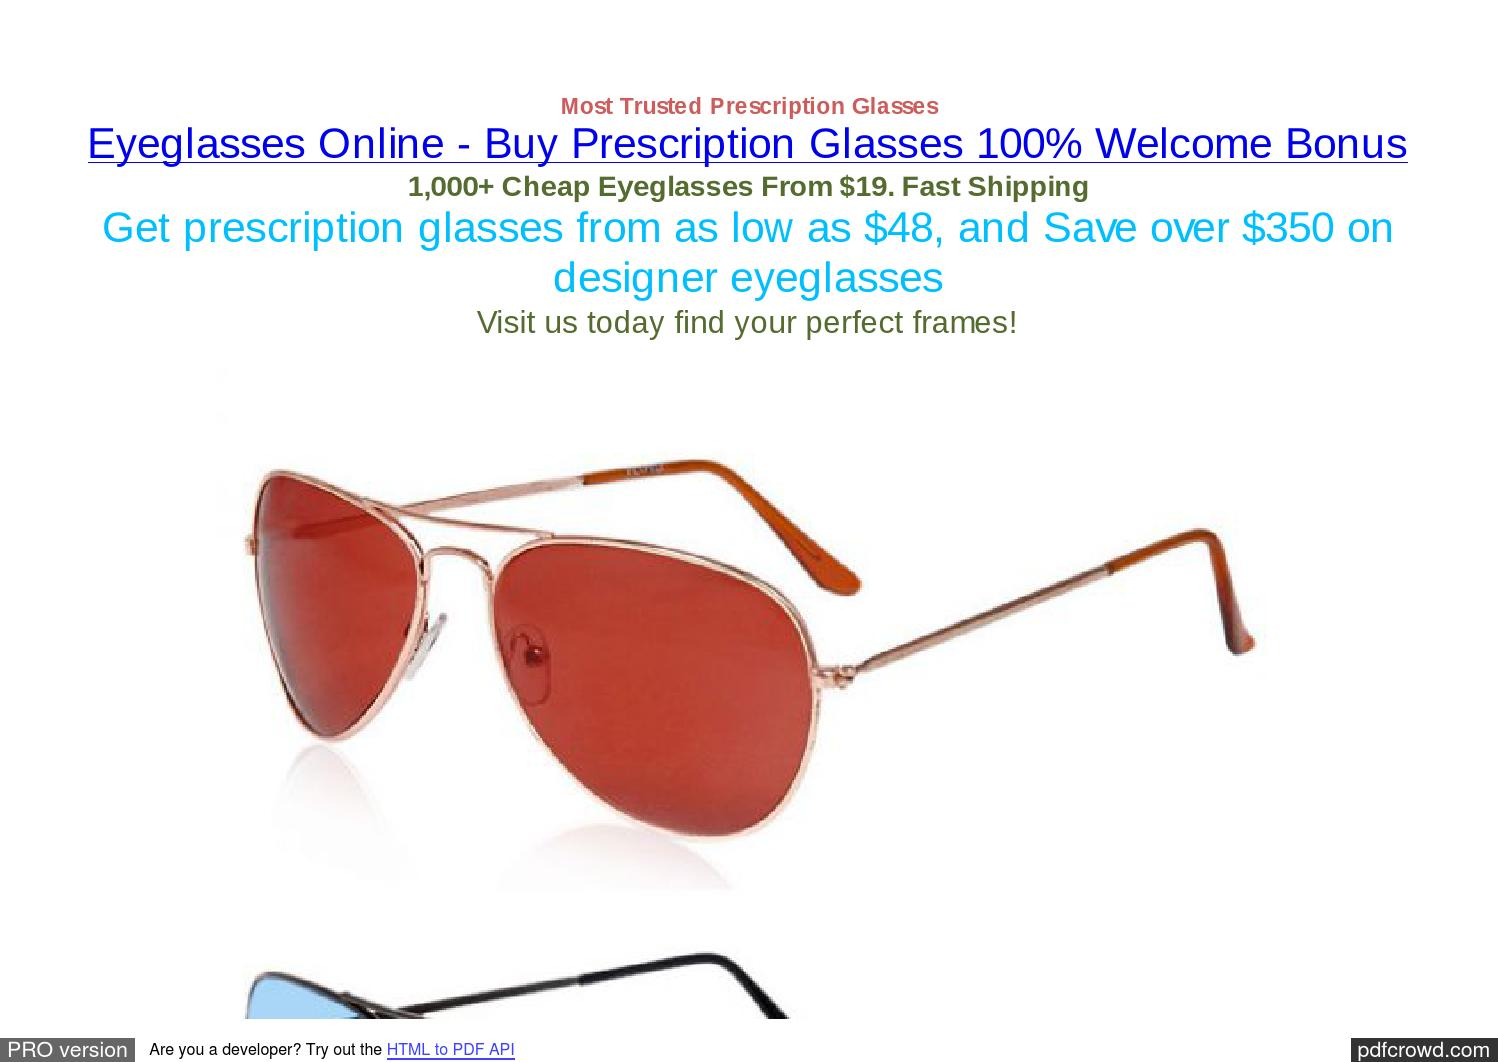 fd85df7469 Order Glasses Online With Prescription     Buy Glasses Frames     Buying Cheap  Glasses Online ei2z by rampoifinque - issuu